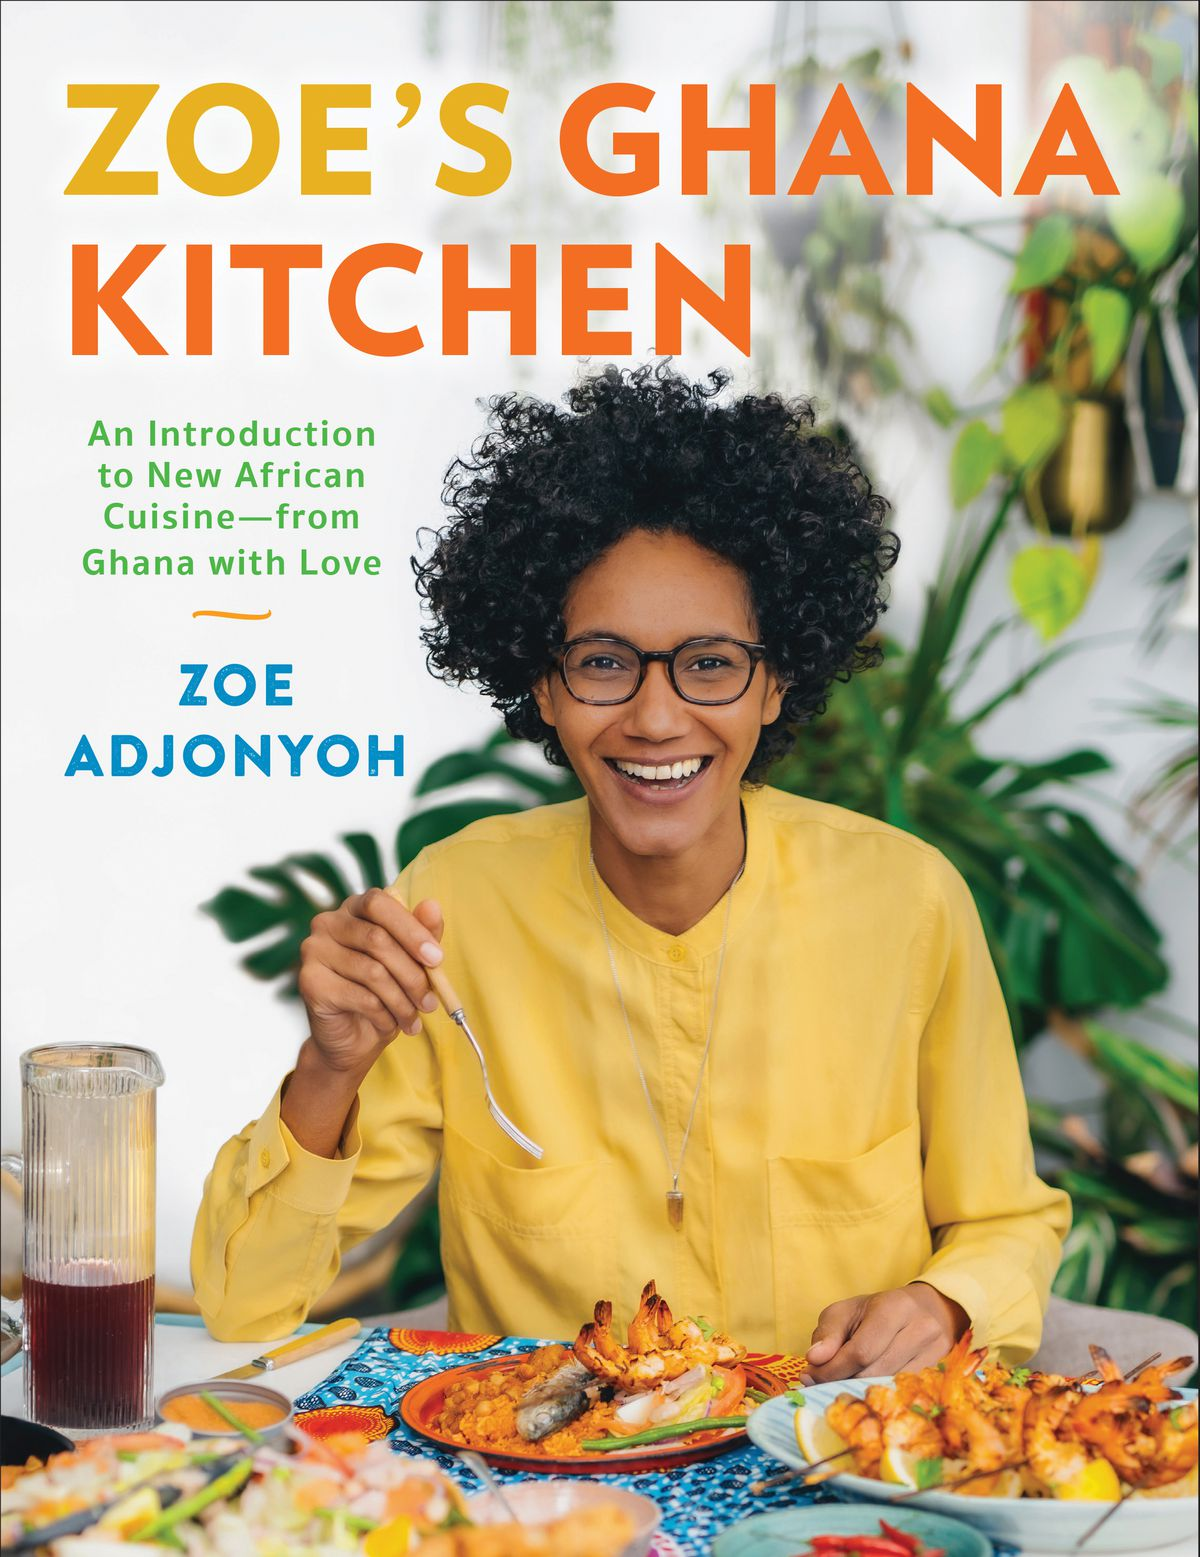 A cookbook cover with a woman wearing a yellow shirt and glasses